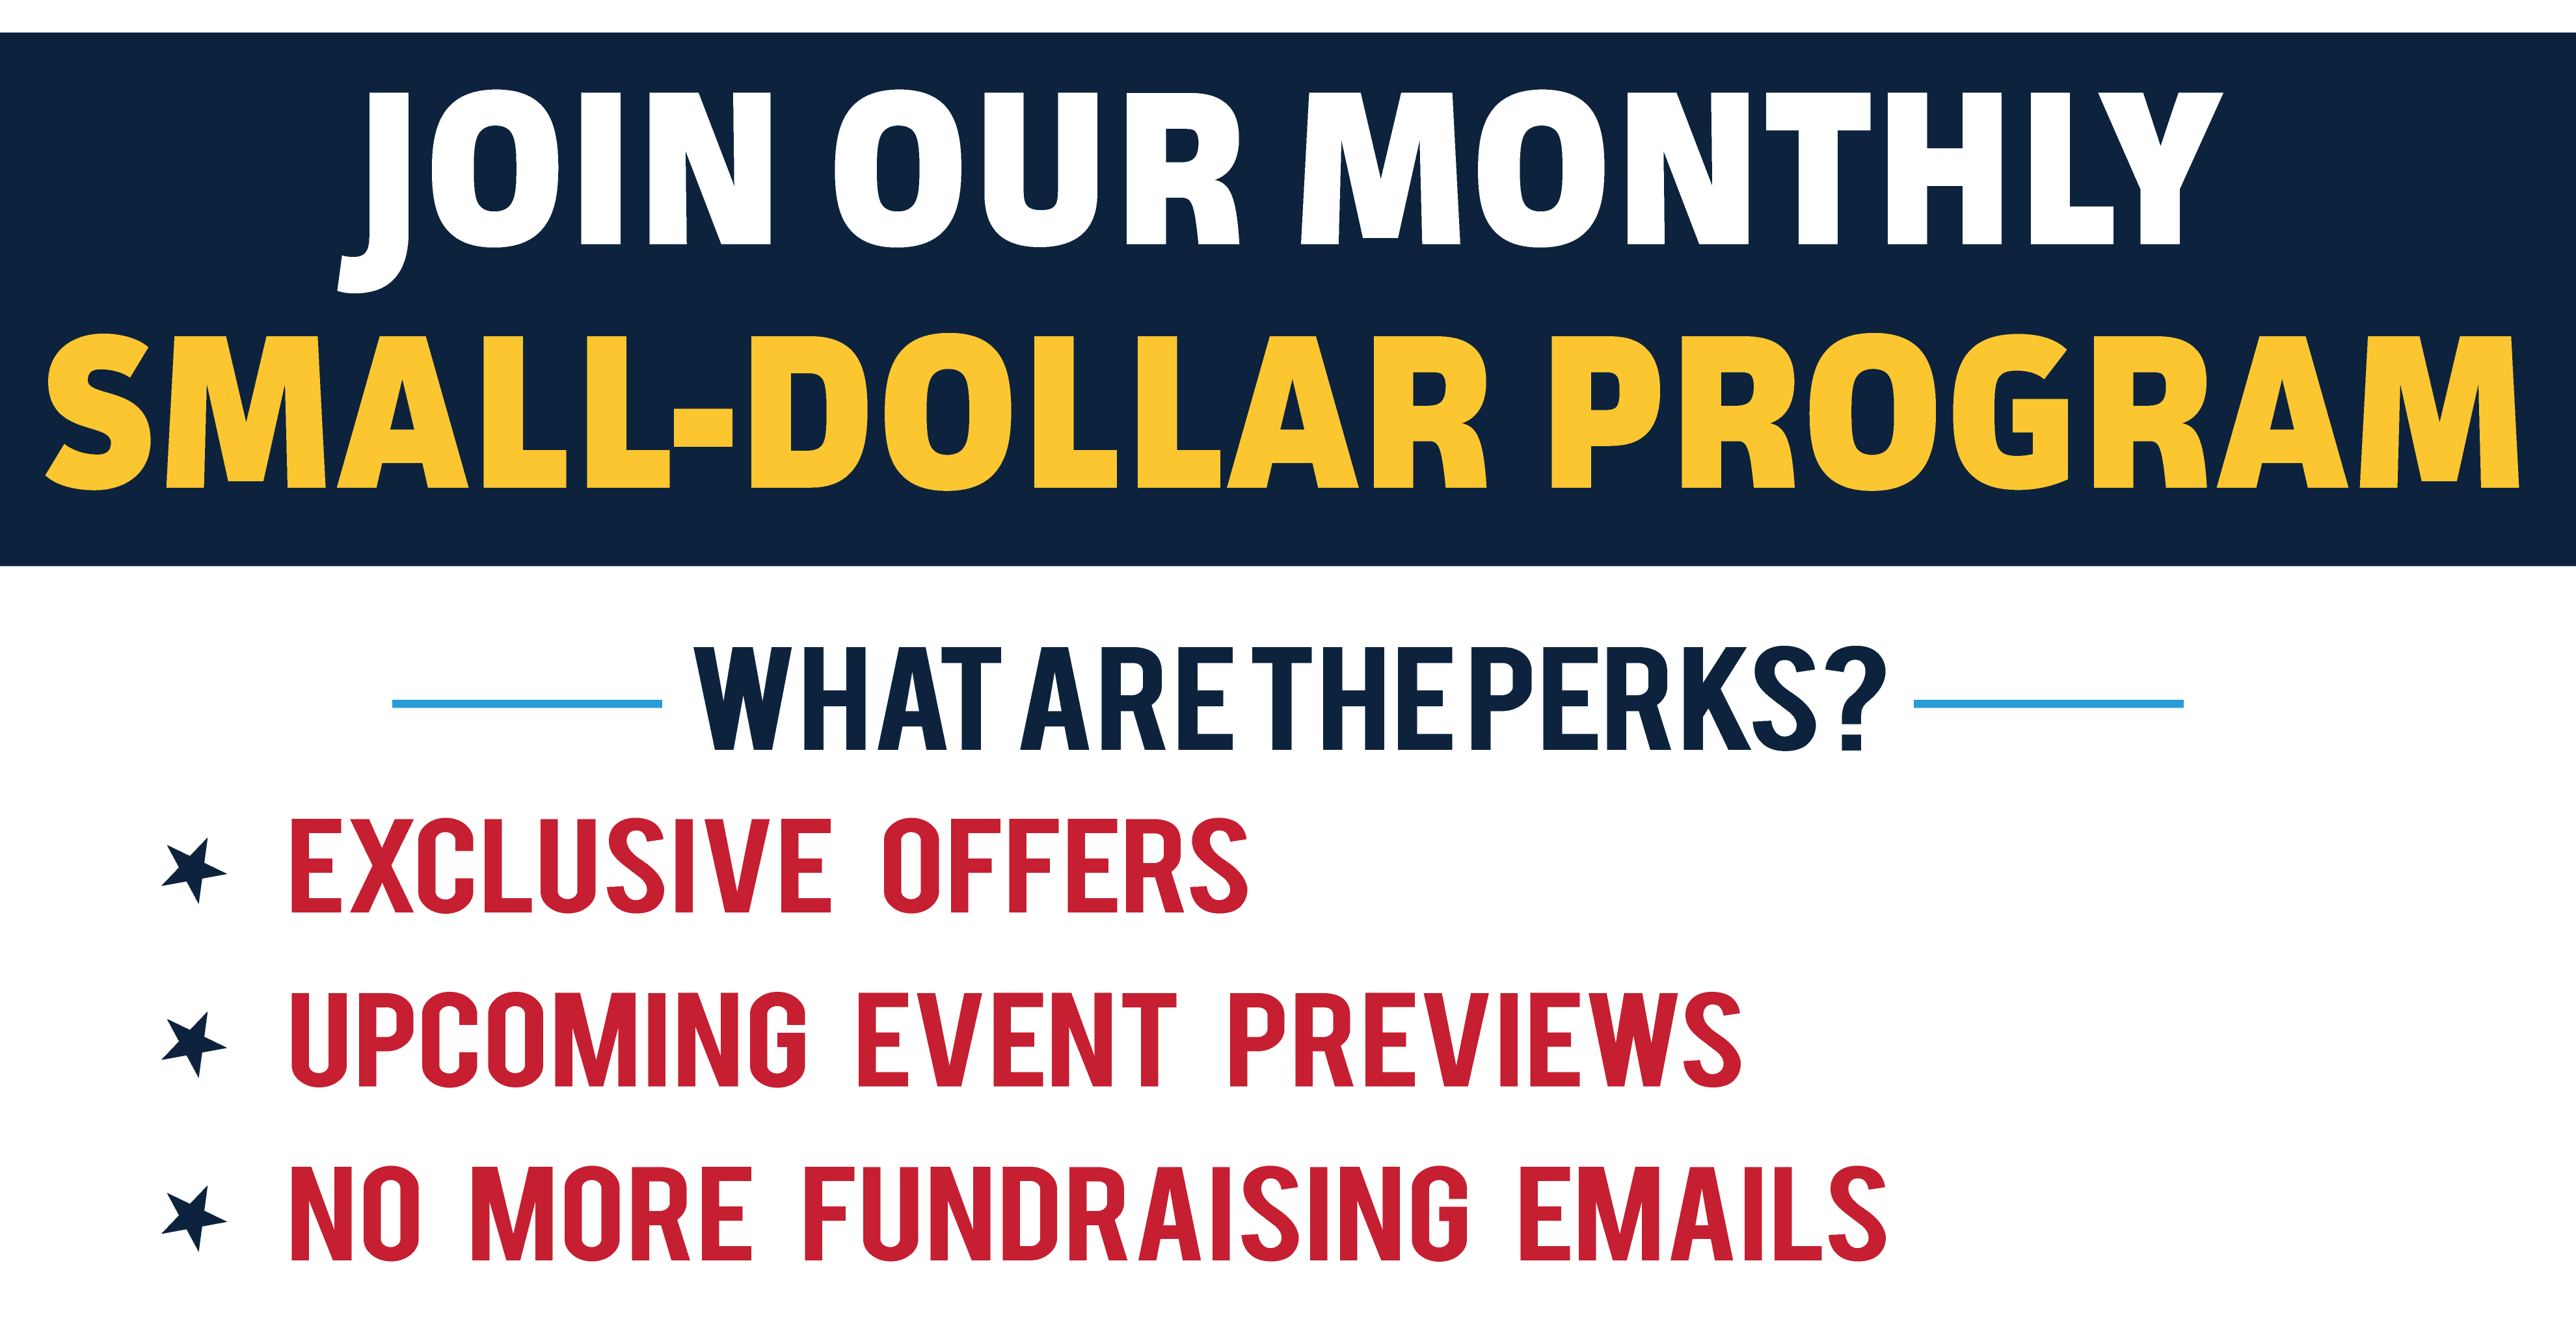 You can join BKC to make automatic monthly donations, no longer receive fundraising emails, and to receive exclusive offers and previews of upcoming events.